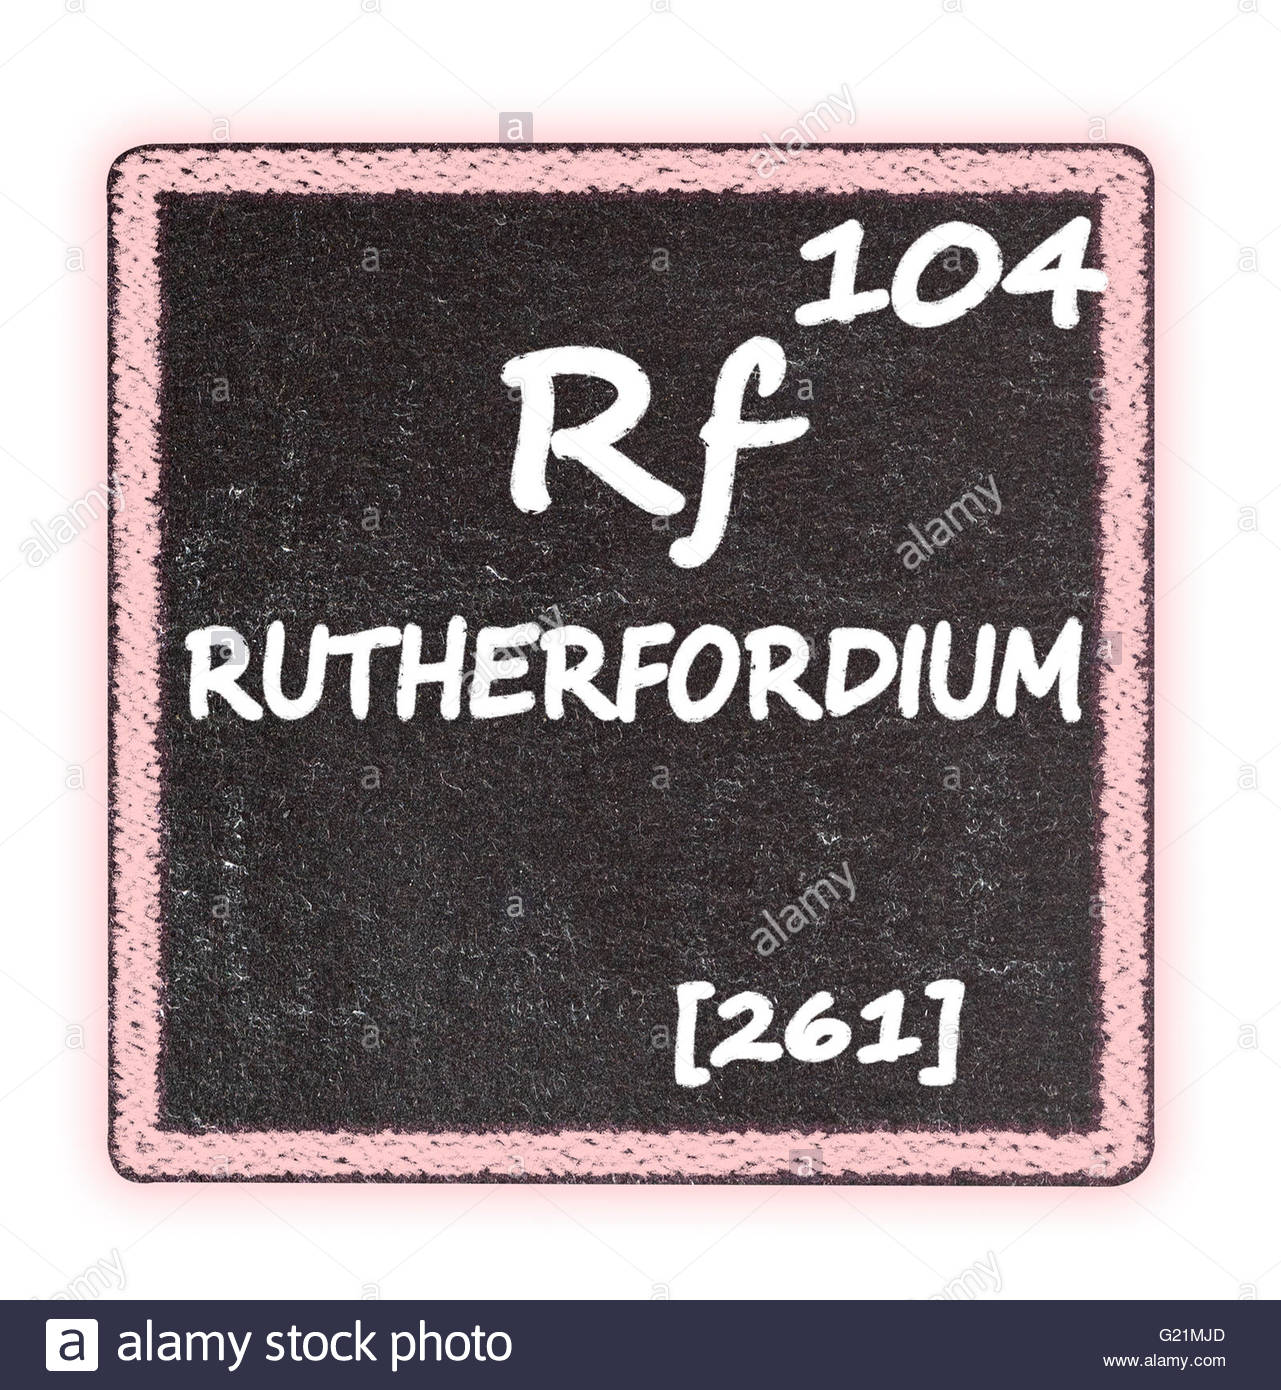 Ruther­fordium  - details from the periodic table Stock Photo